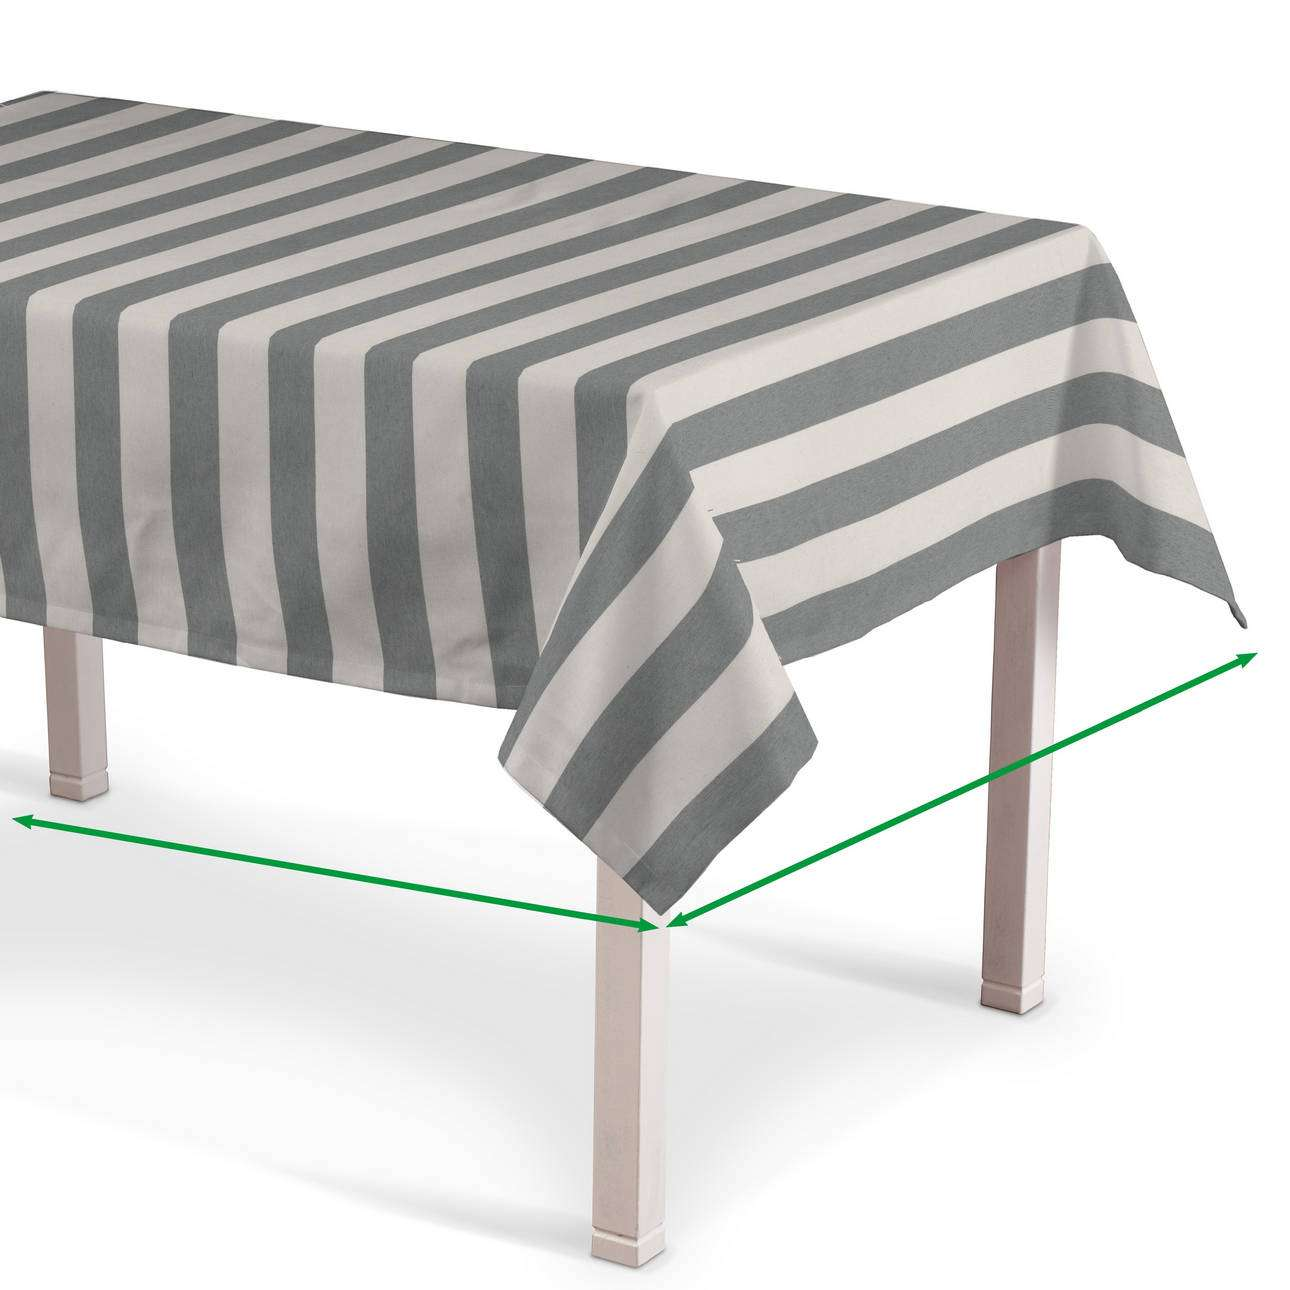 Rectangular tablecloth in collection Quadro, fabric: 142-71